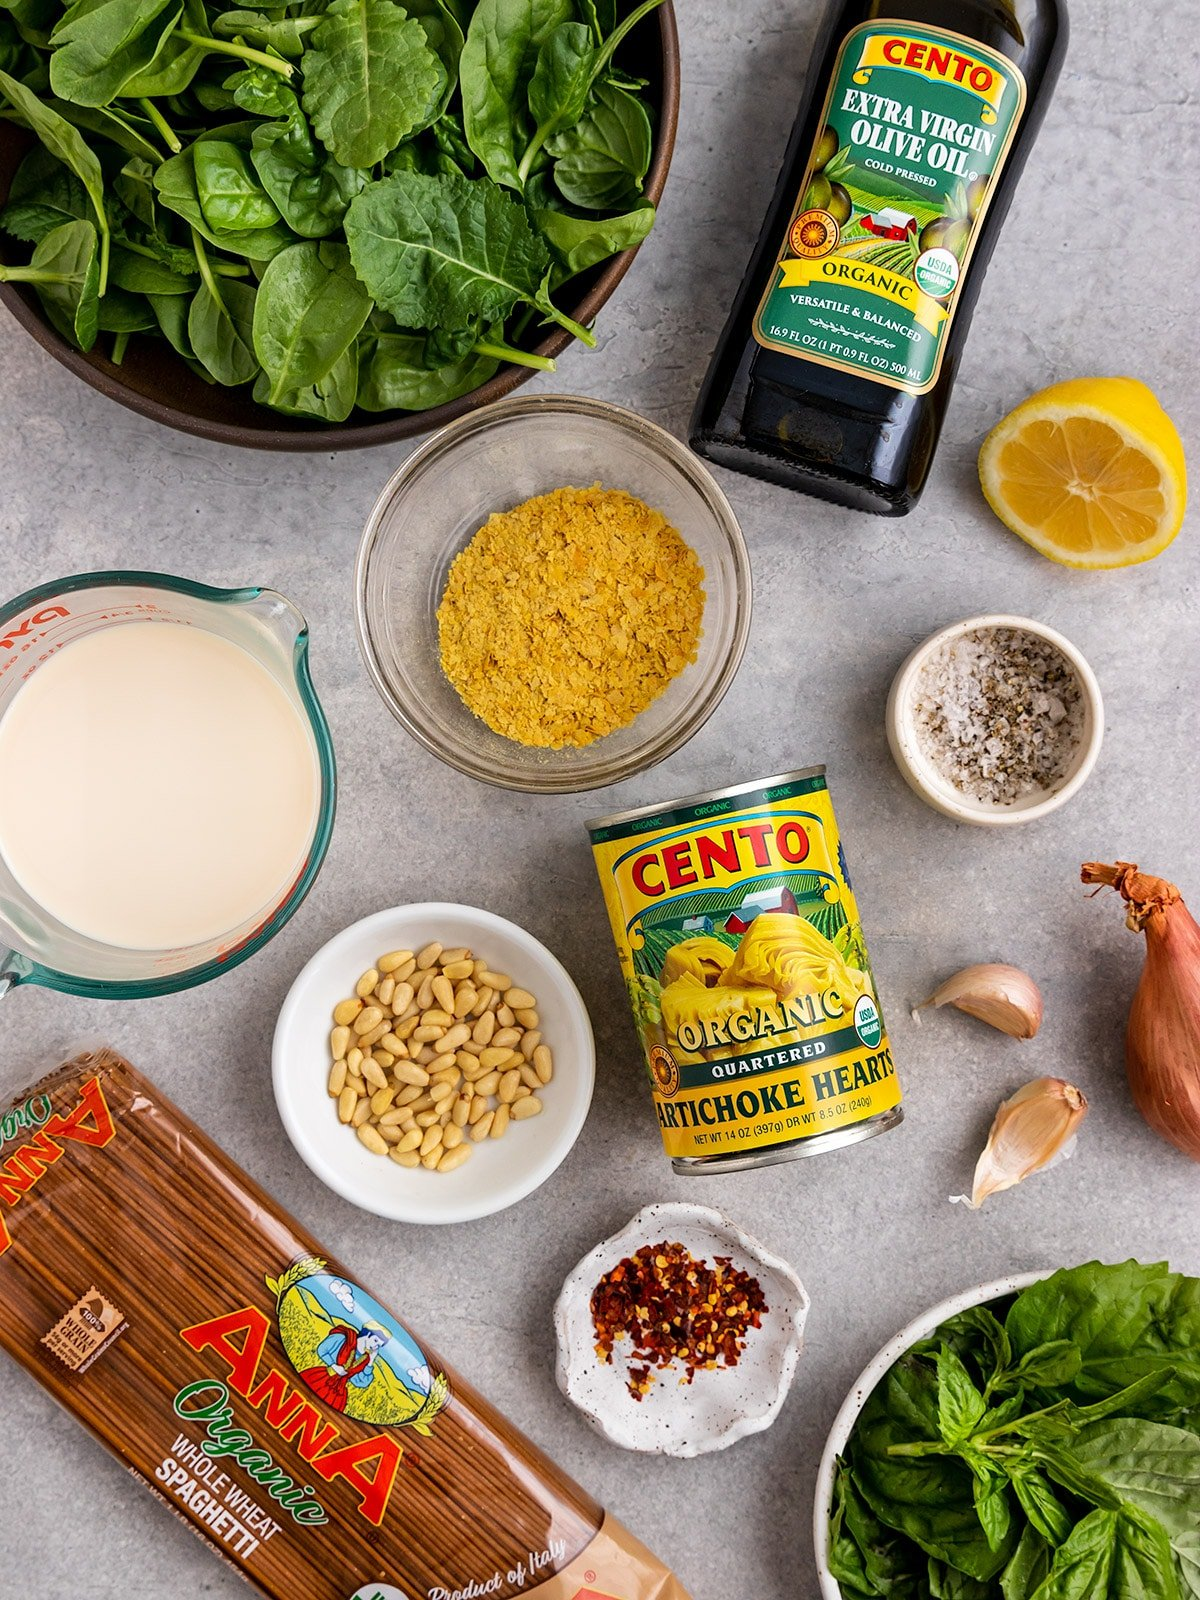 picture of ingredients for spinach artichoke pasta including pasta, artichokes, spinach, basil, salt, pepper, lemon, shallot, garlic, chili flakes, oat milk, and nutritional yeast